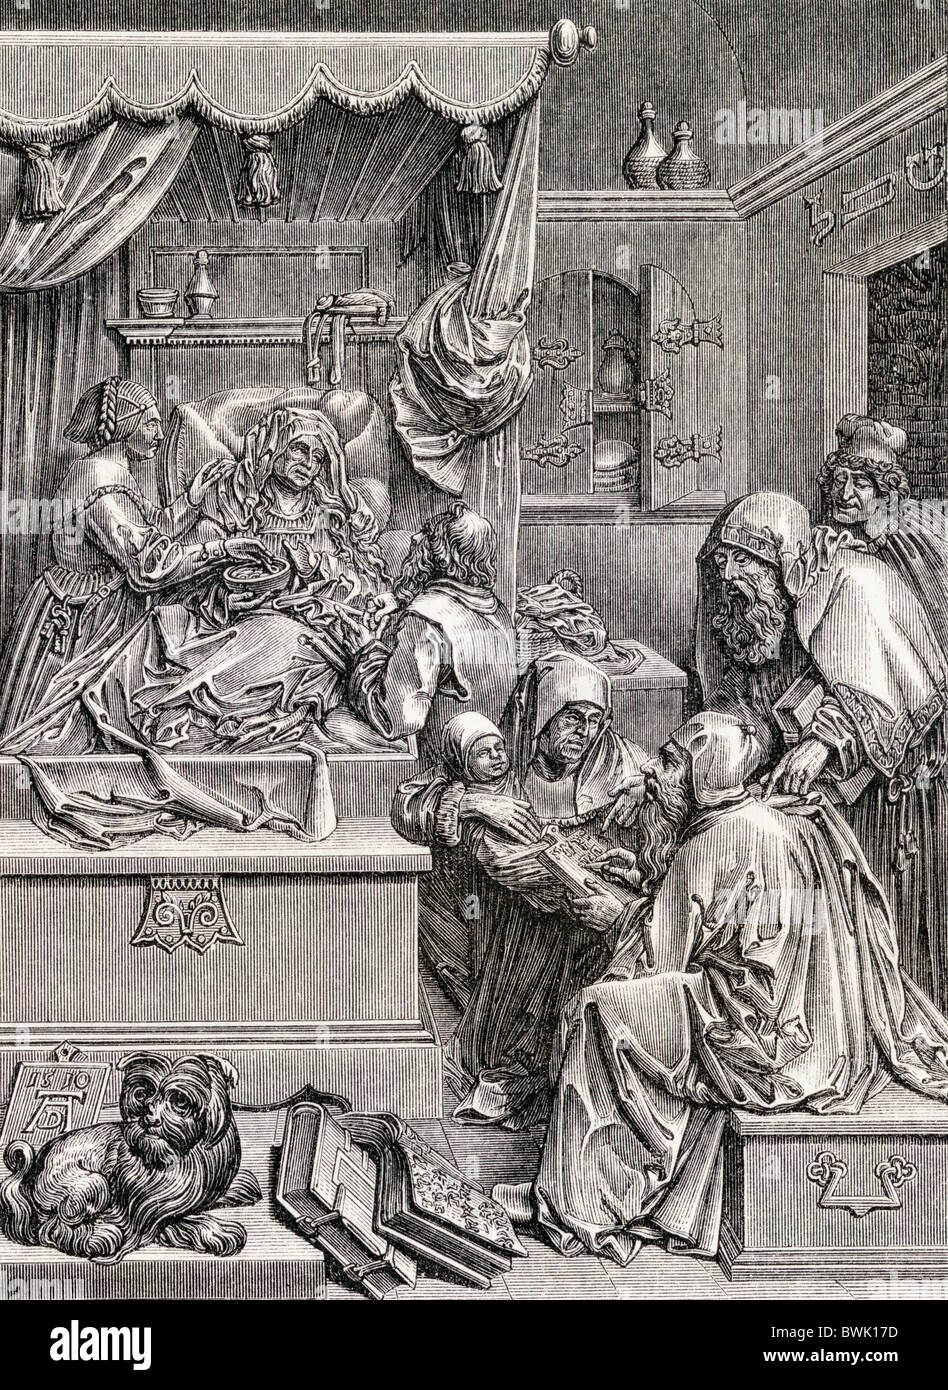 High relief sculpture by Albrecht Durer of The Birth of St John. 16th century. - Stock Image